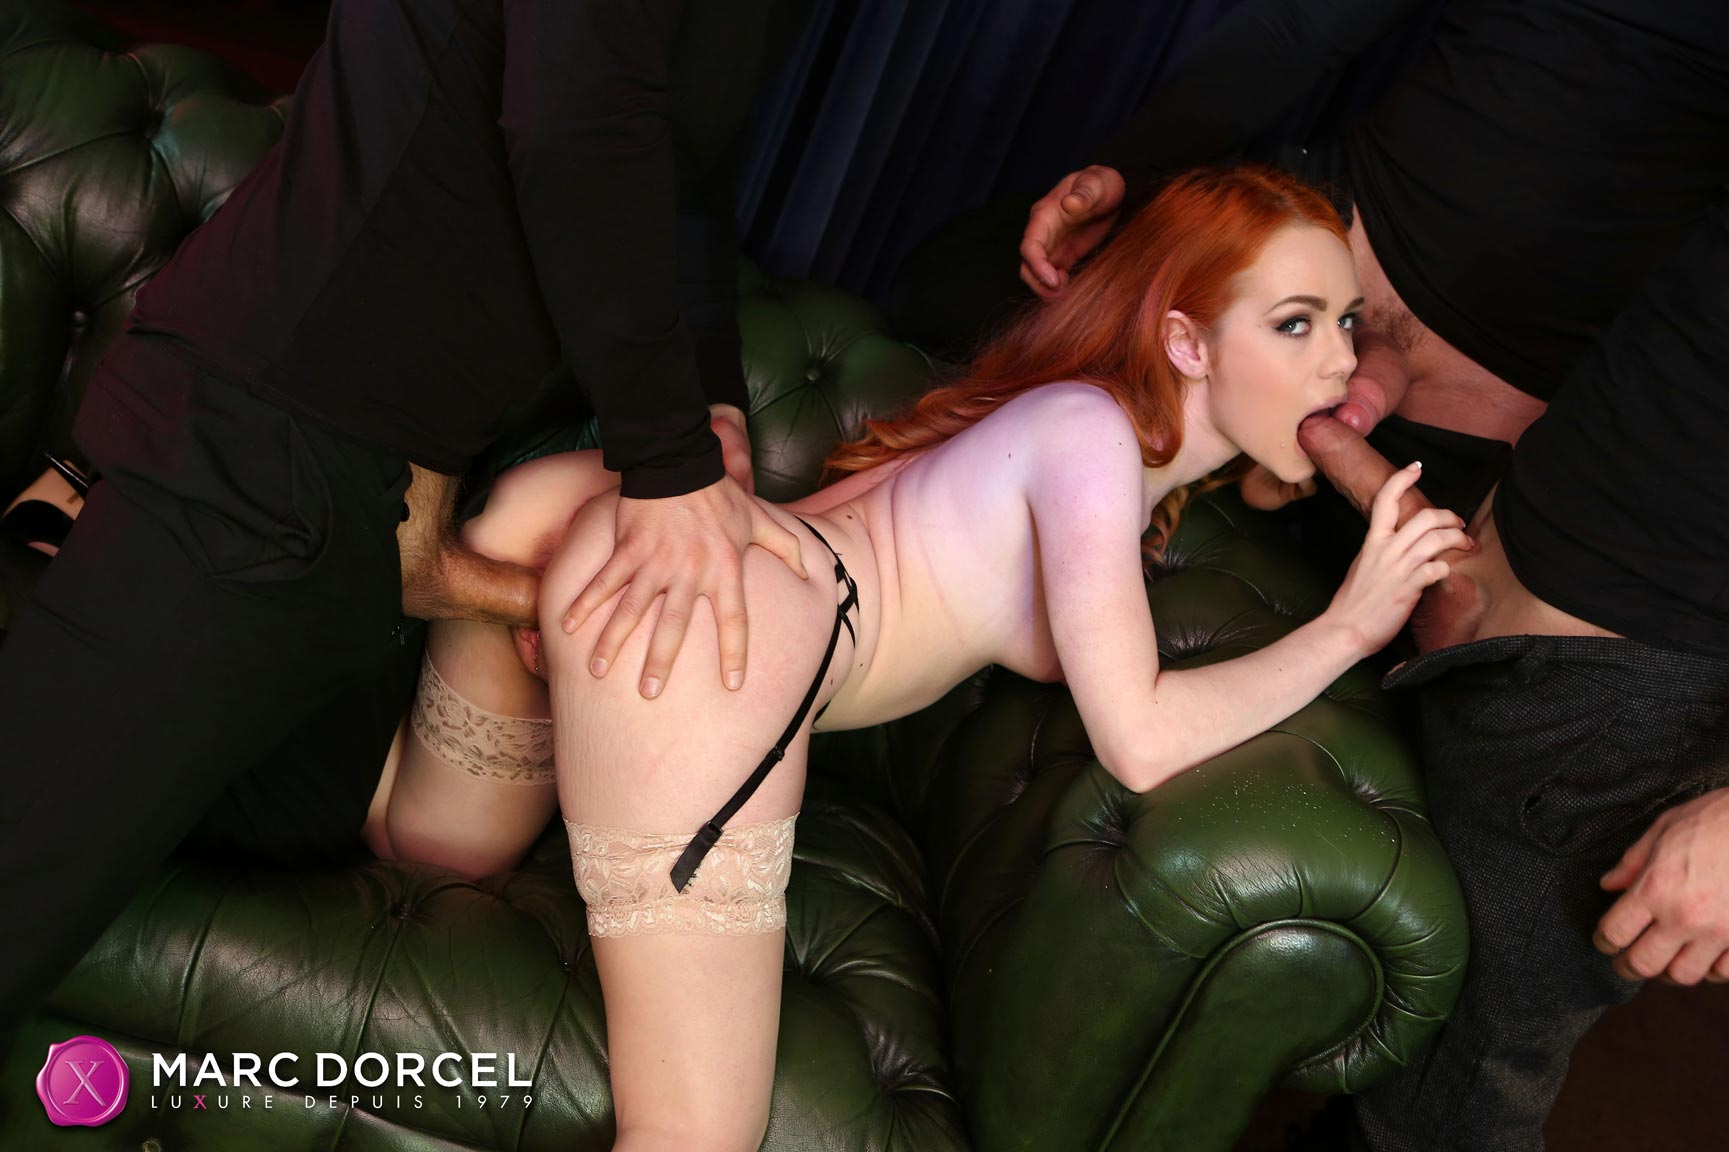 Gorgeous stocking redhead with tiny tits in a wild gangbang scene.